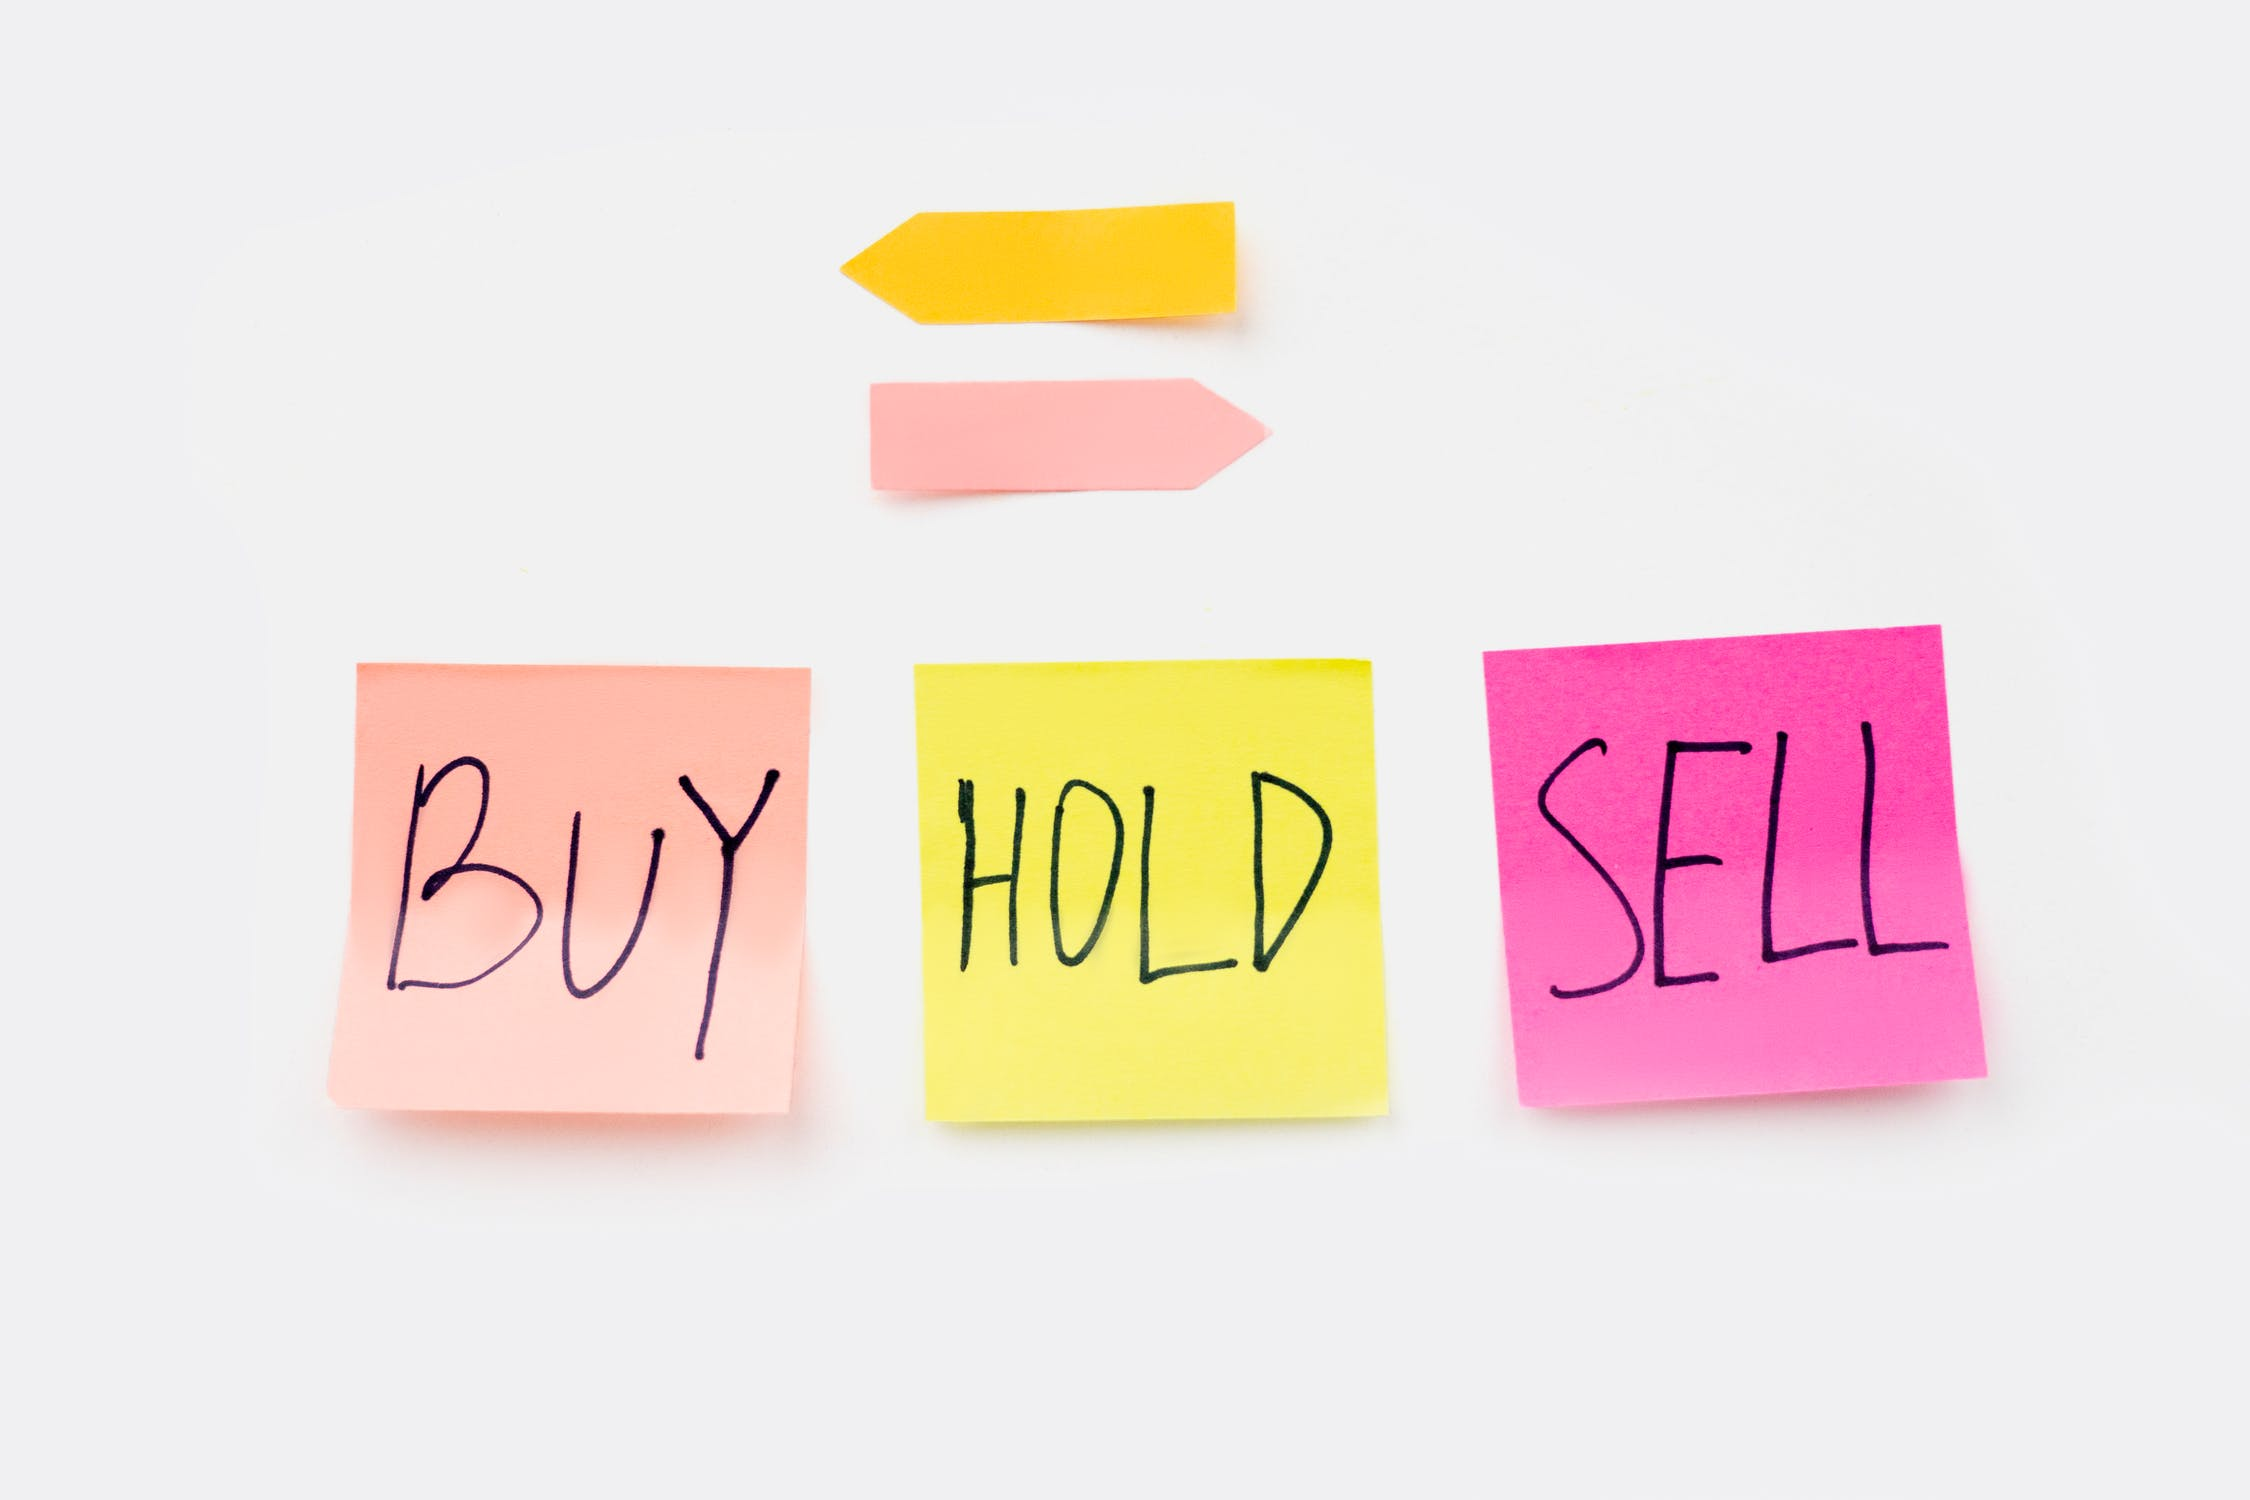 buy-hold-sell